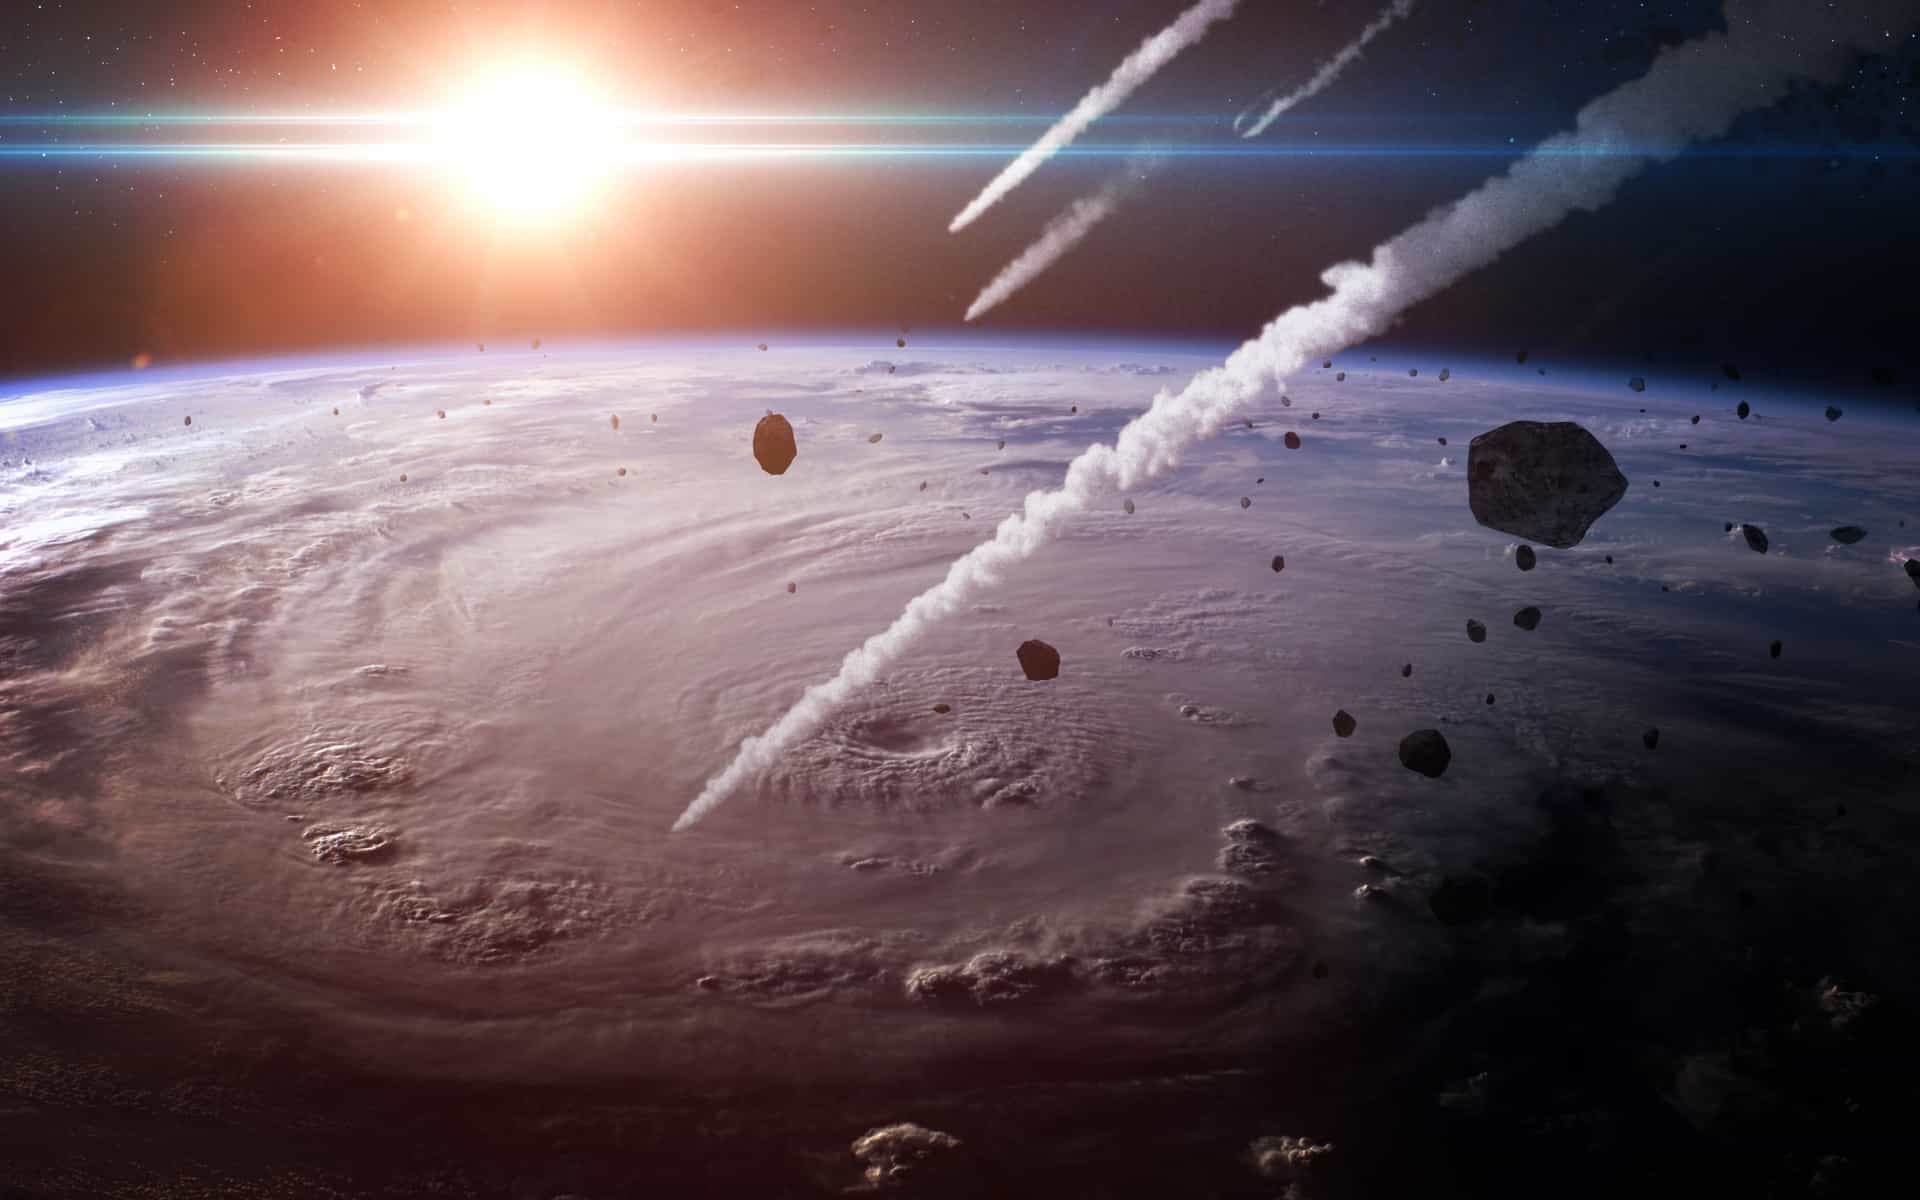 Asteroids that almost hit our planet